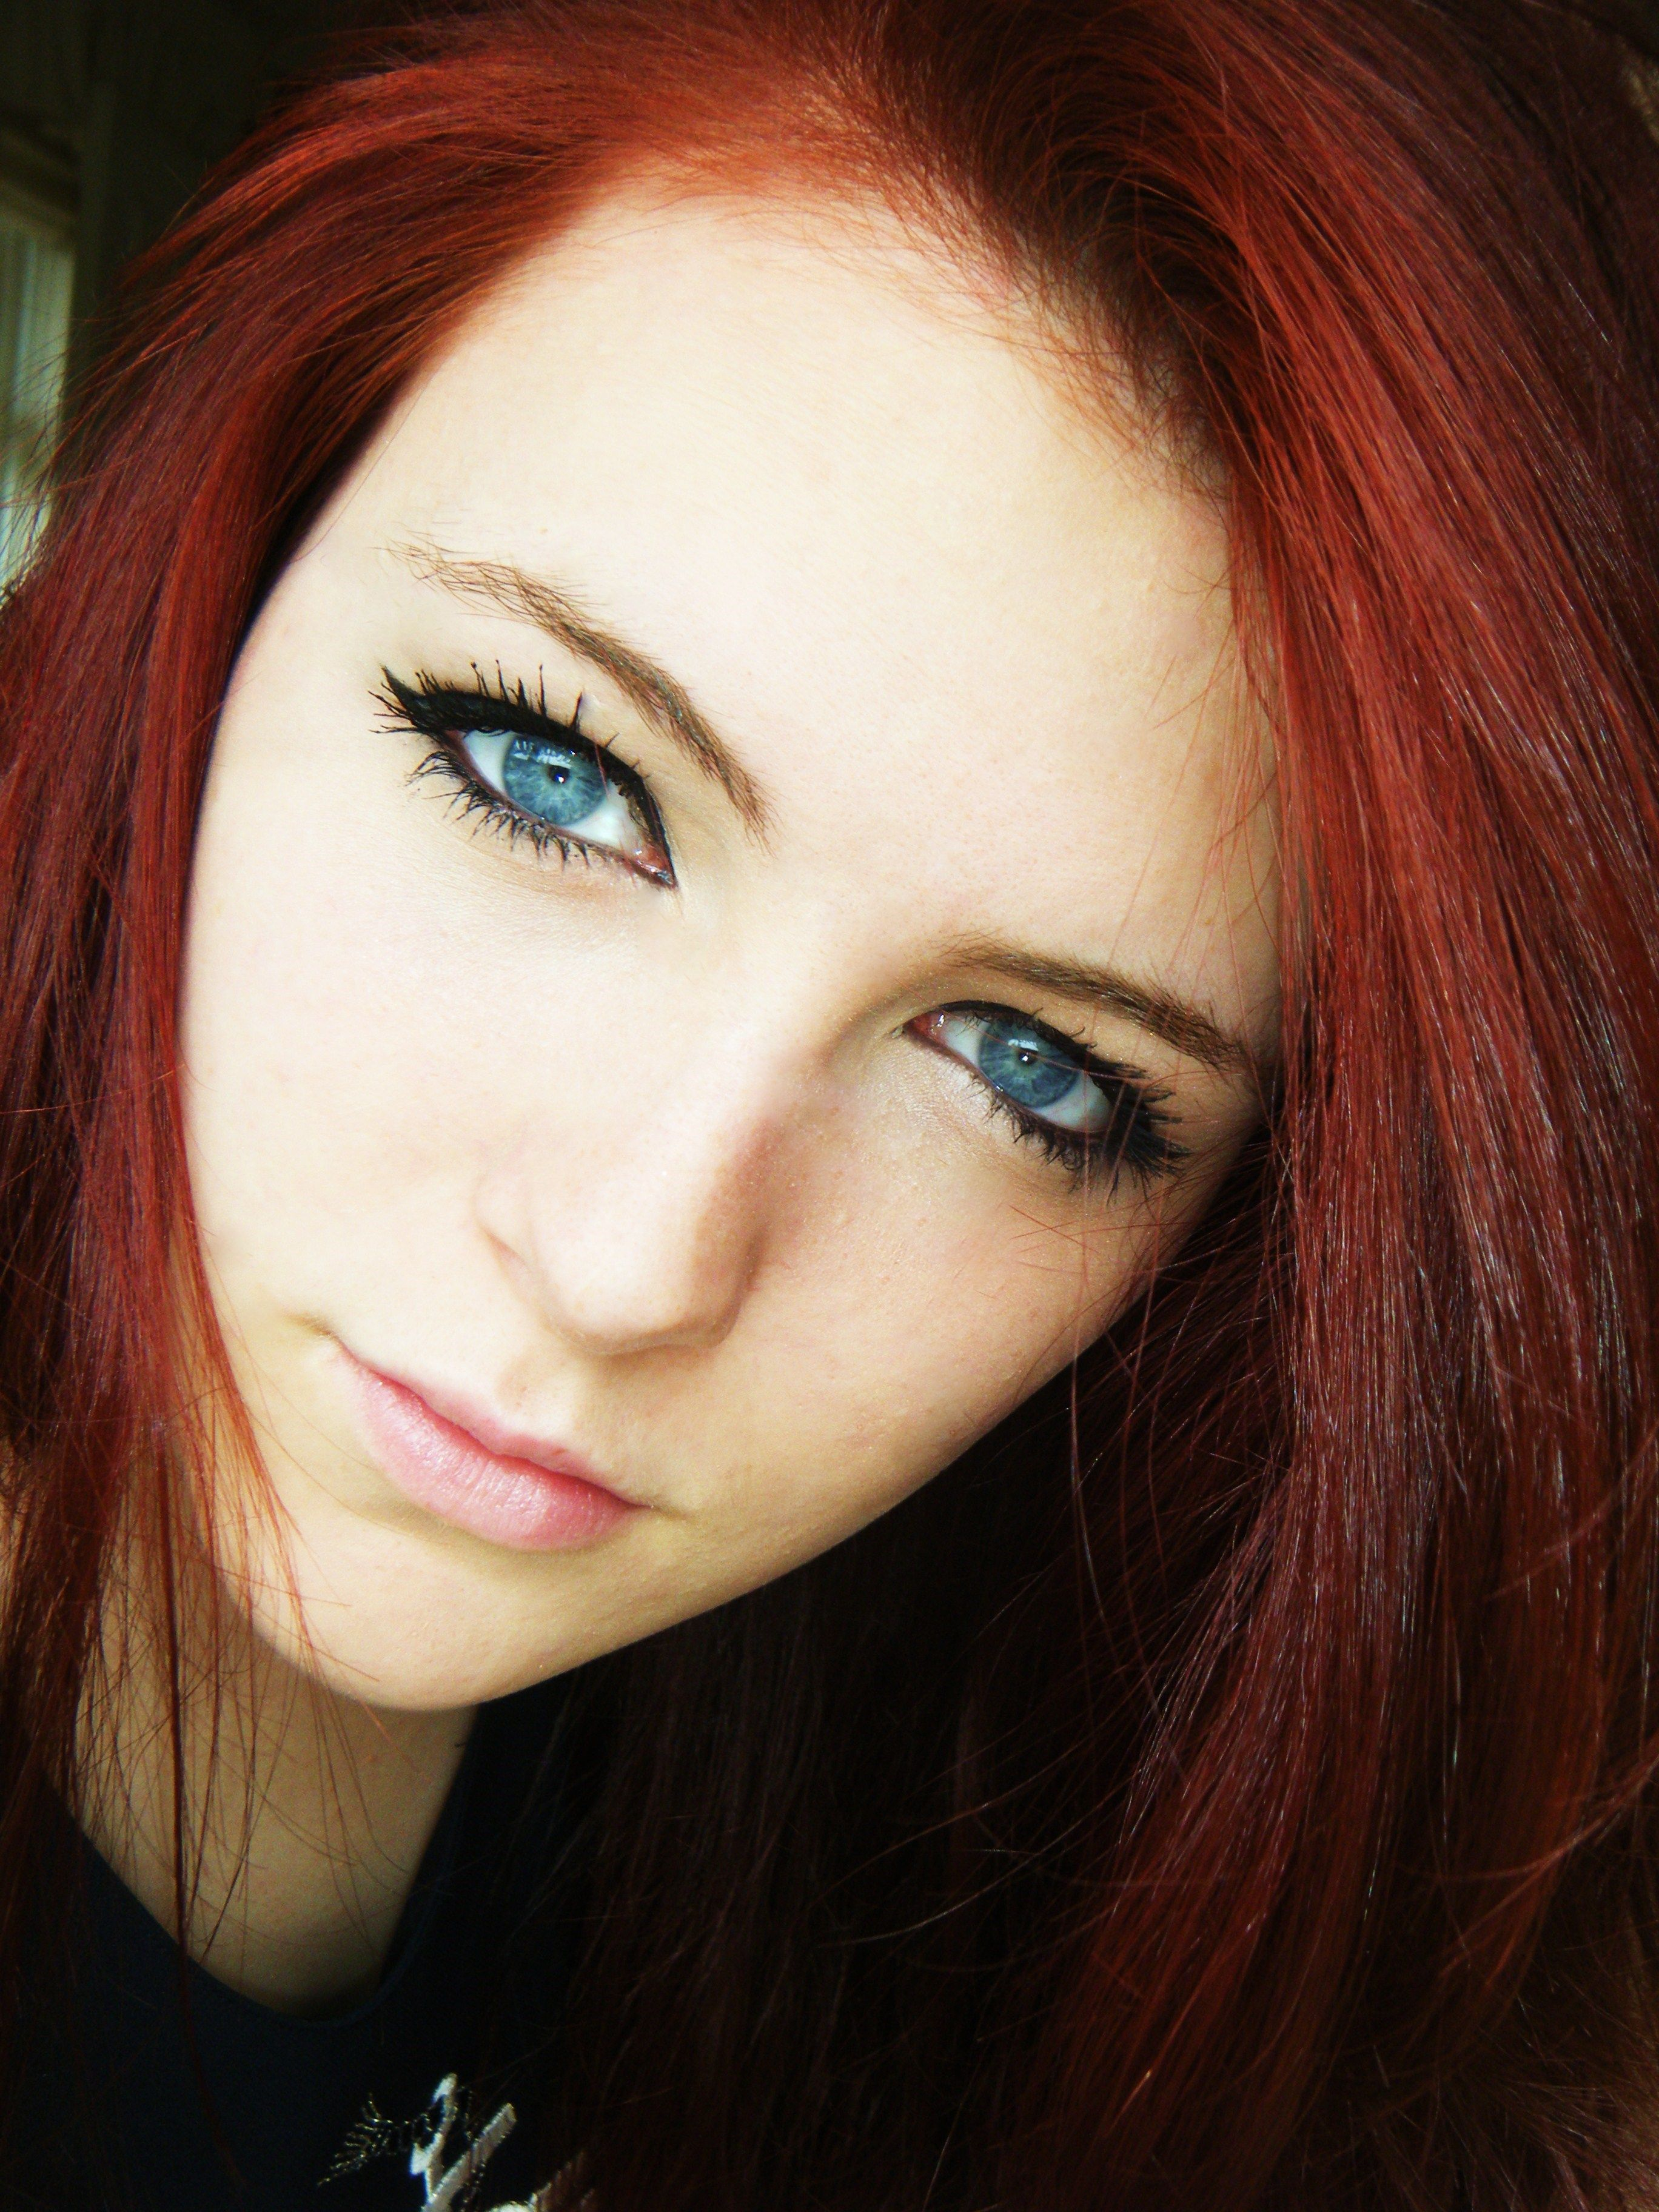 Pretty Girls With Natural Red Hair And Blue Eyes Portrait - red hair, b...